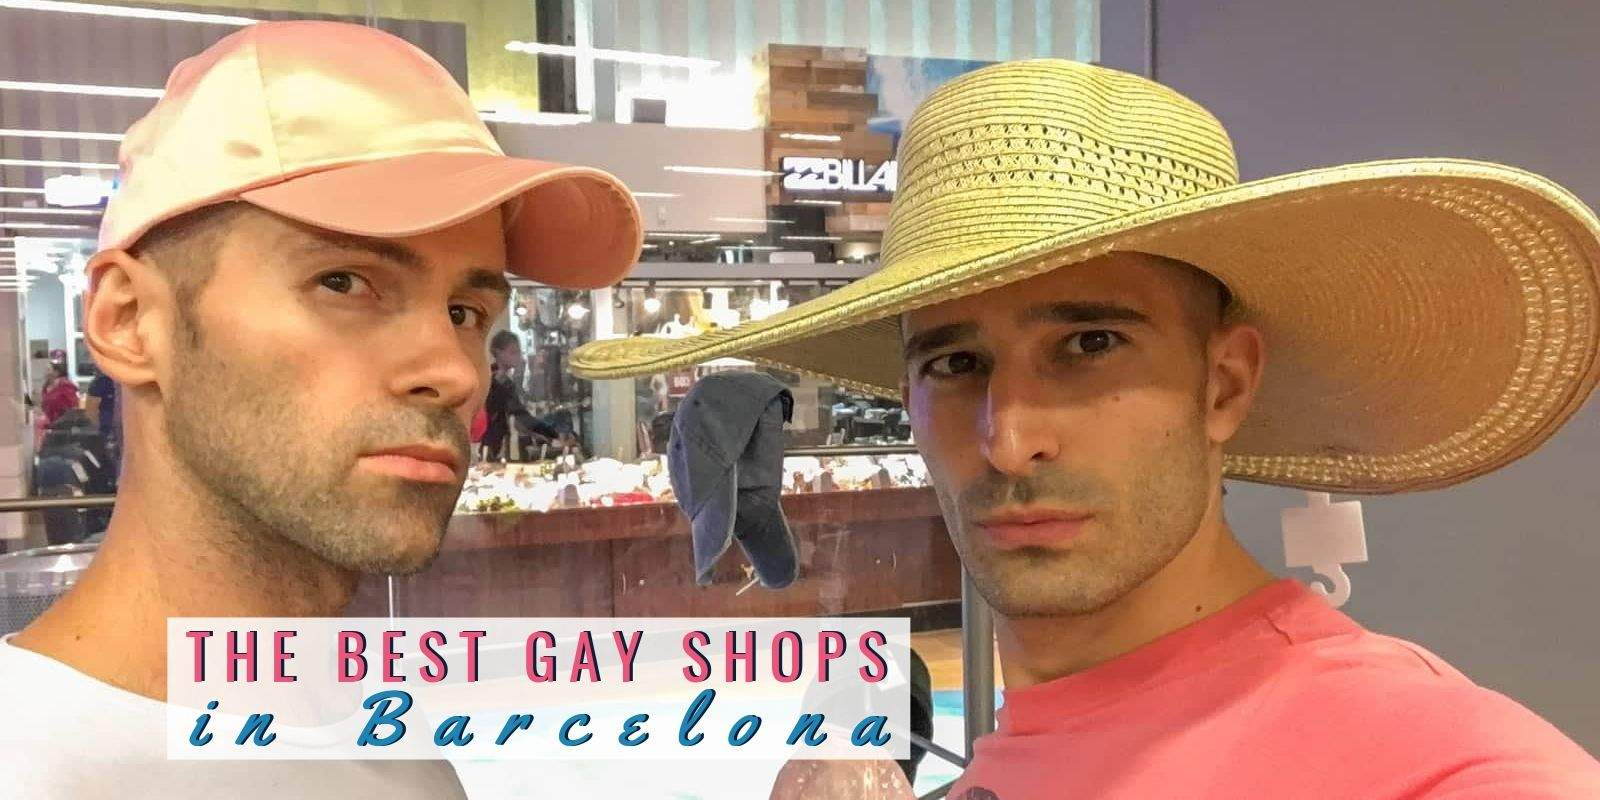 Find out our favourite gay shops in Barcelona, from clothes to sex toys!